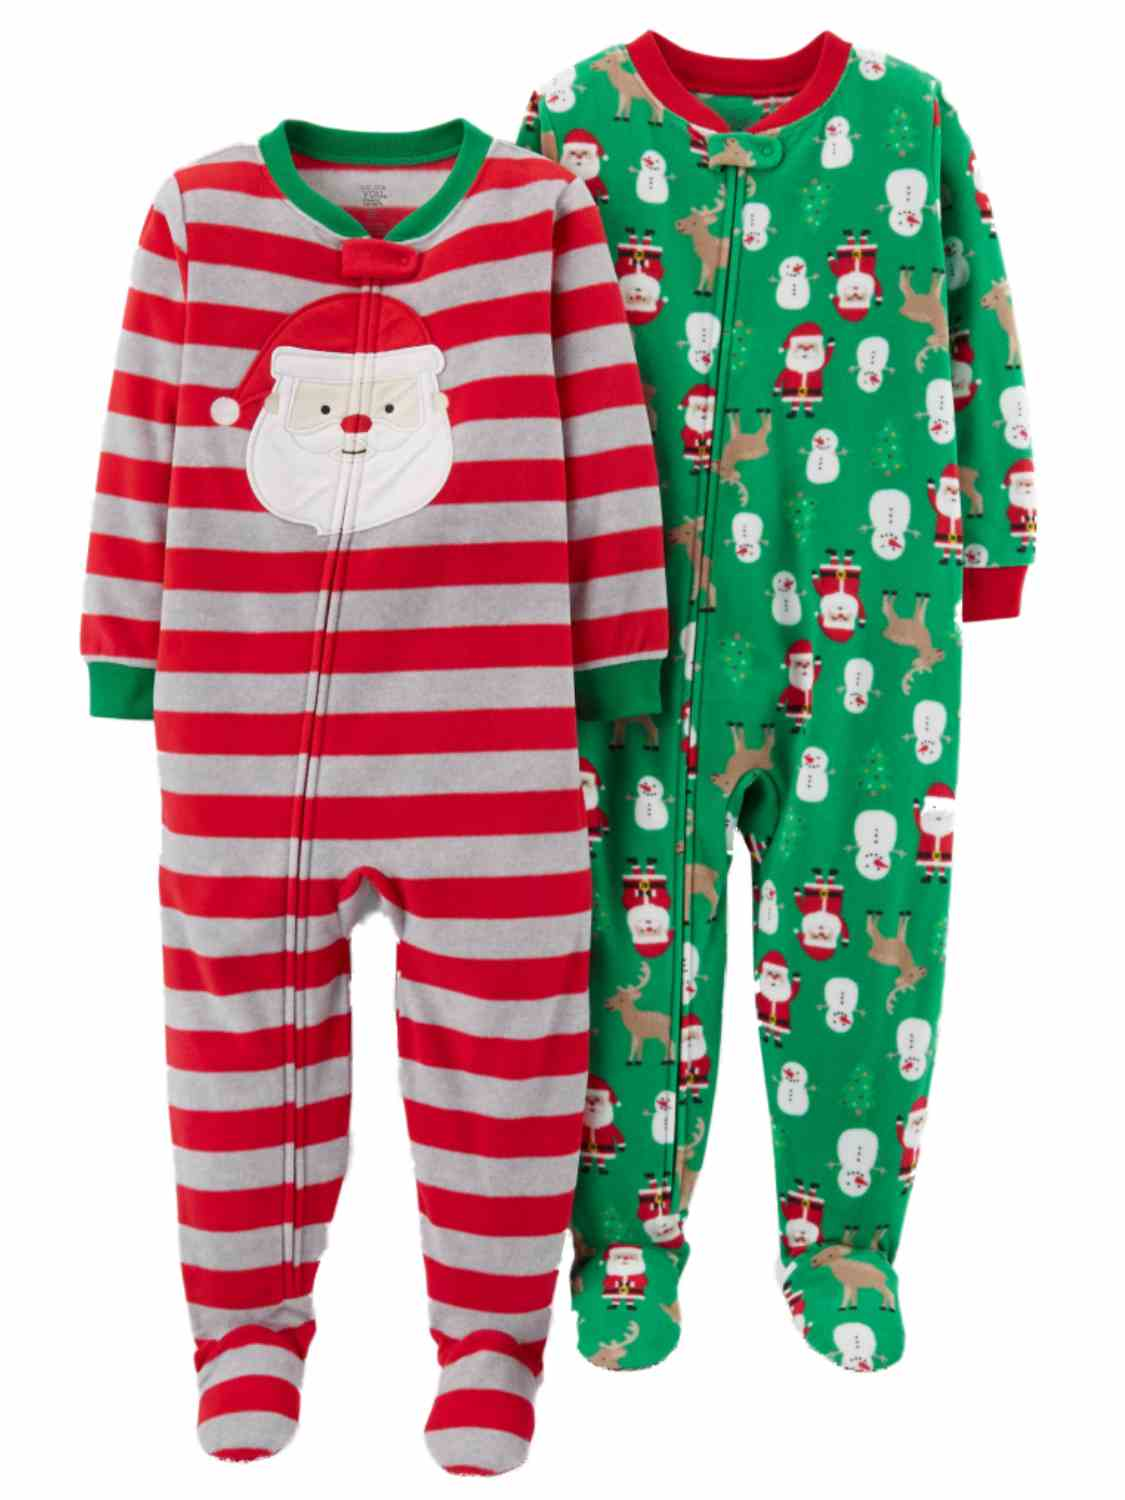 Carters Infant Boys 2 Christmas Sleepers Set Santa Claus & Reindeer Pajamas  - Size - 12 Months